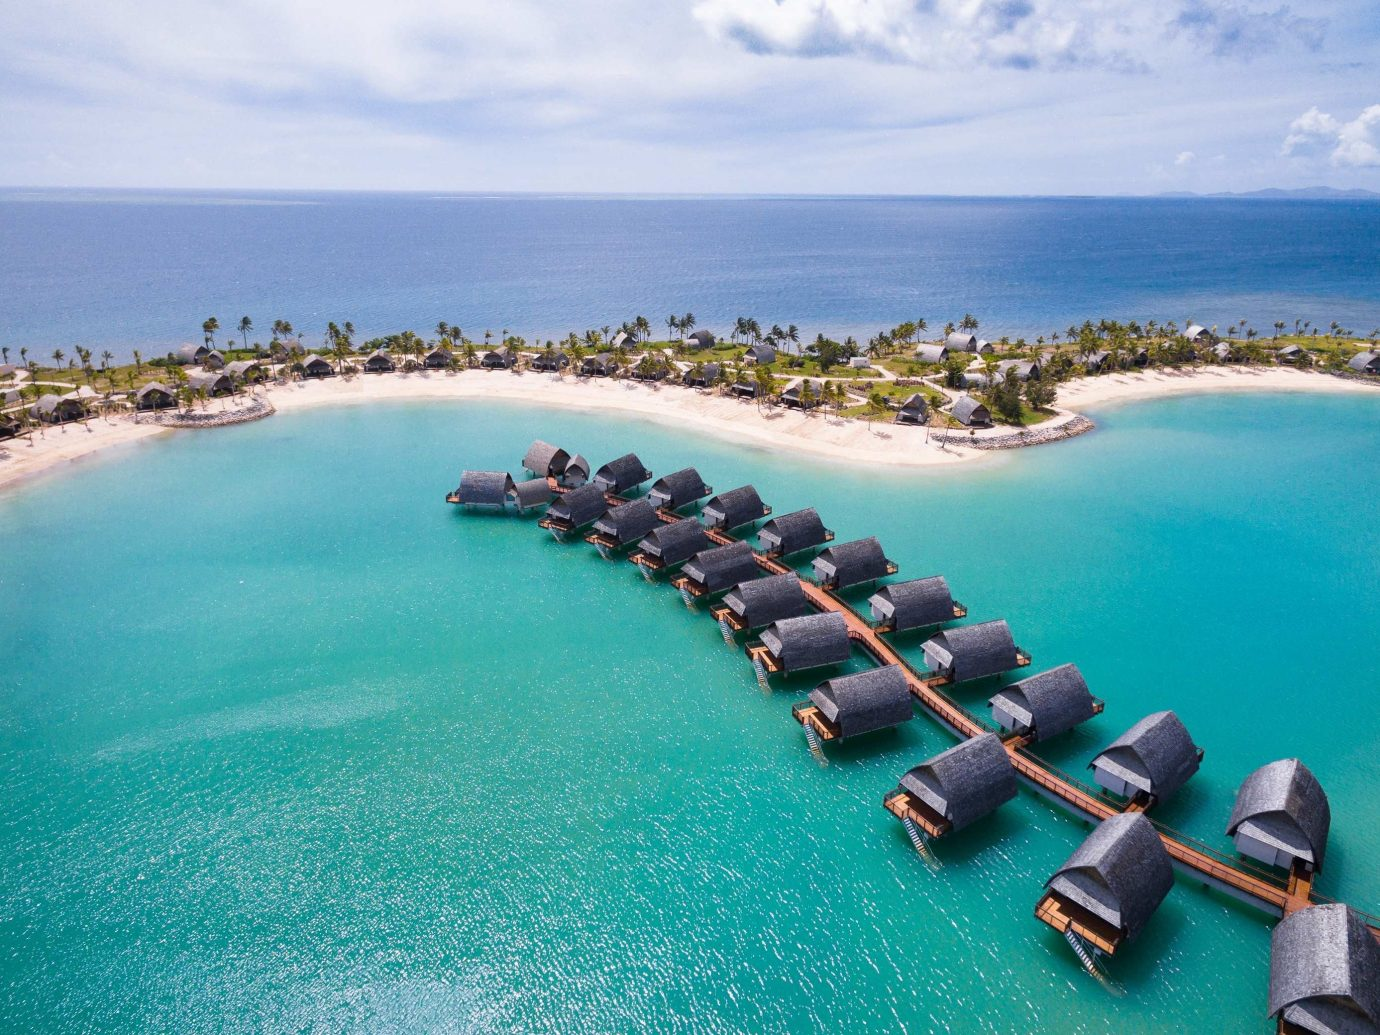 Romantic Getaways sky water outdoor coastal and oceanic landforms Ocean Sea Nature promontory Island tropics Coast Lagoon bay islet tourism caribbean aerial photography vacation atoll swimming pool archipelago inlet cape lined reef shore line